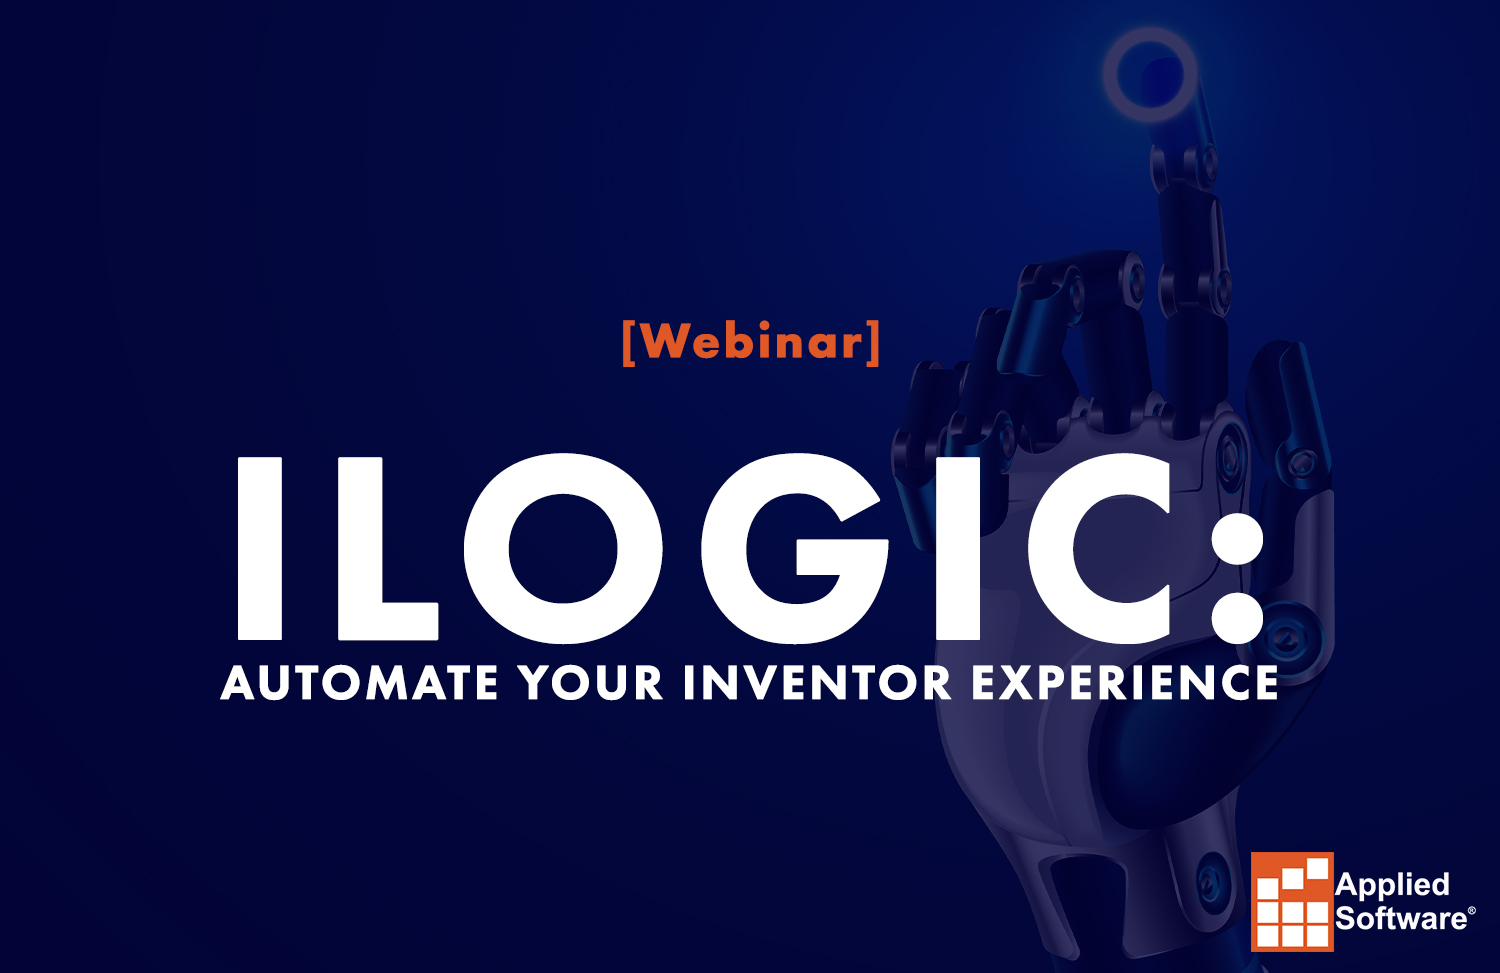 iLogic- Automate your Inventor Experience